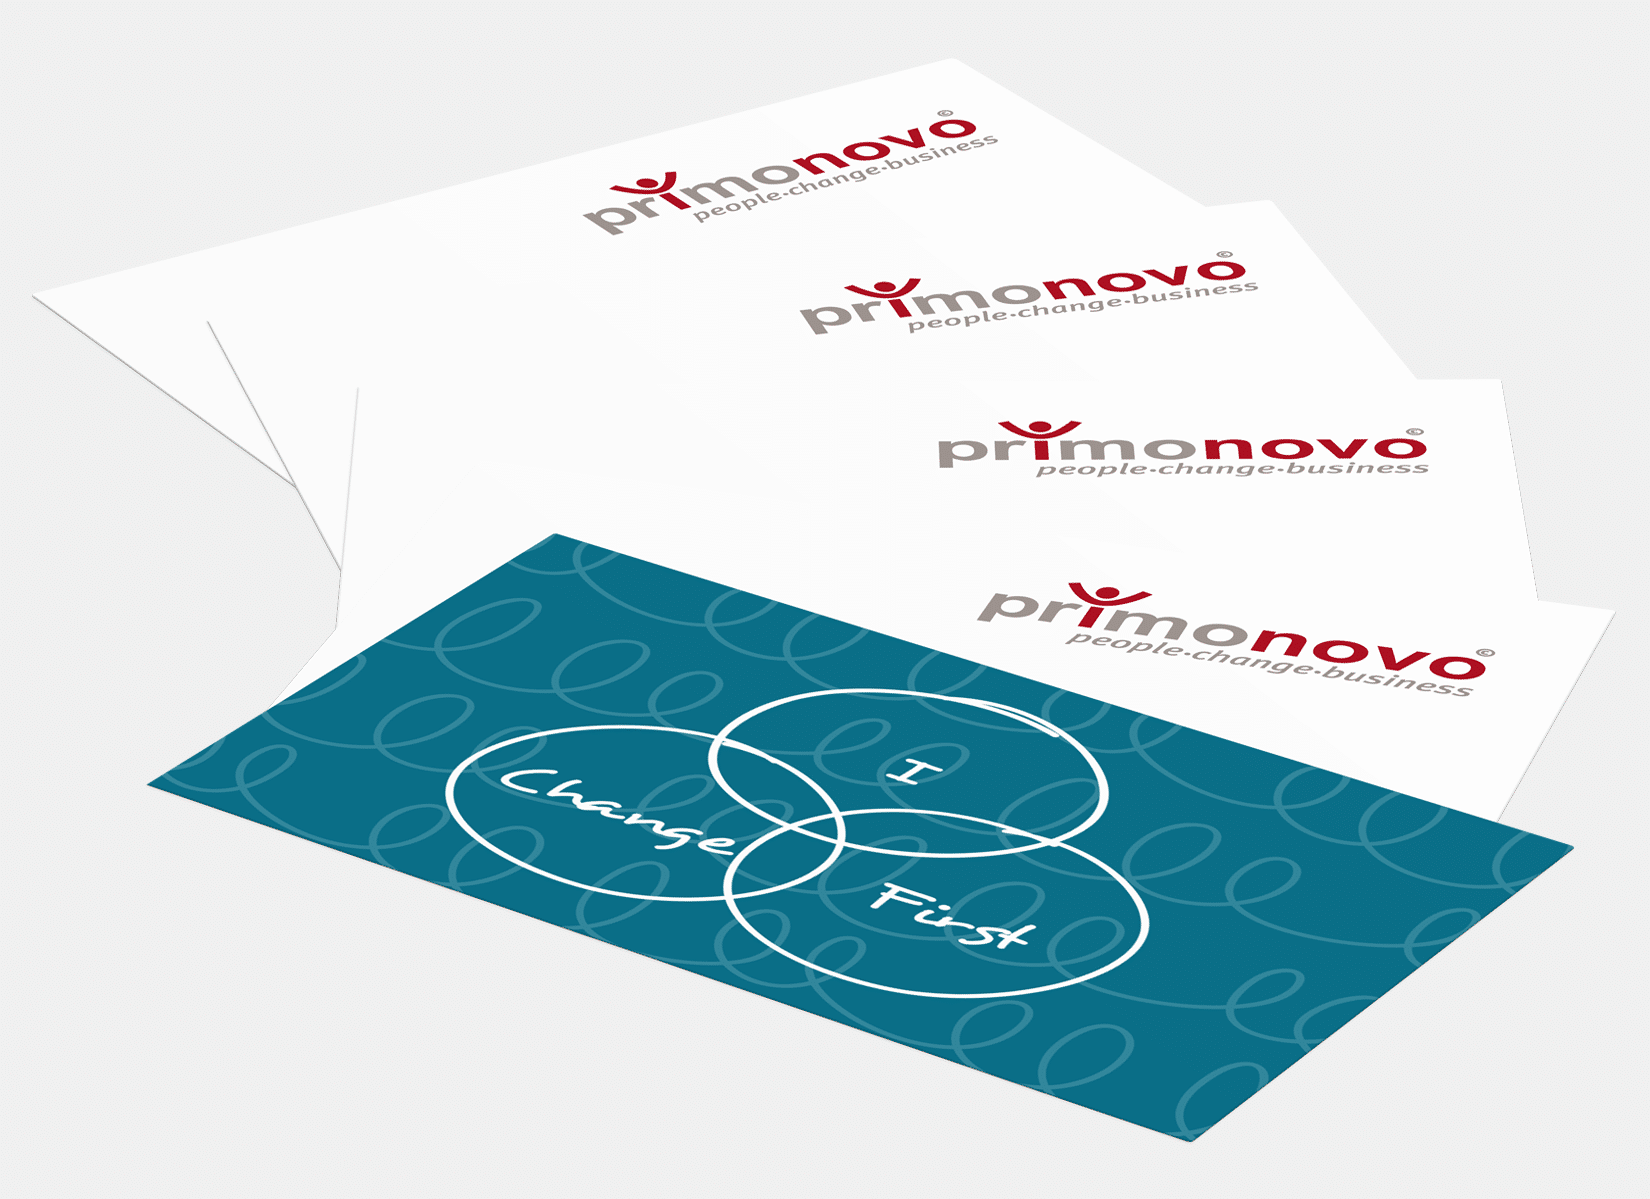 Primonovo Business Cards